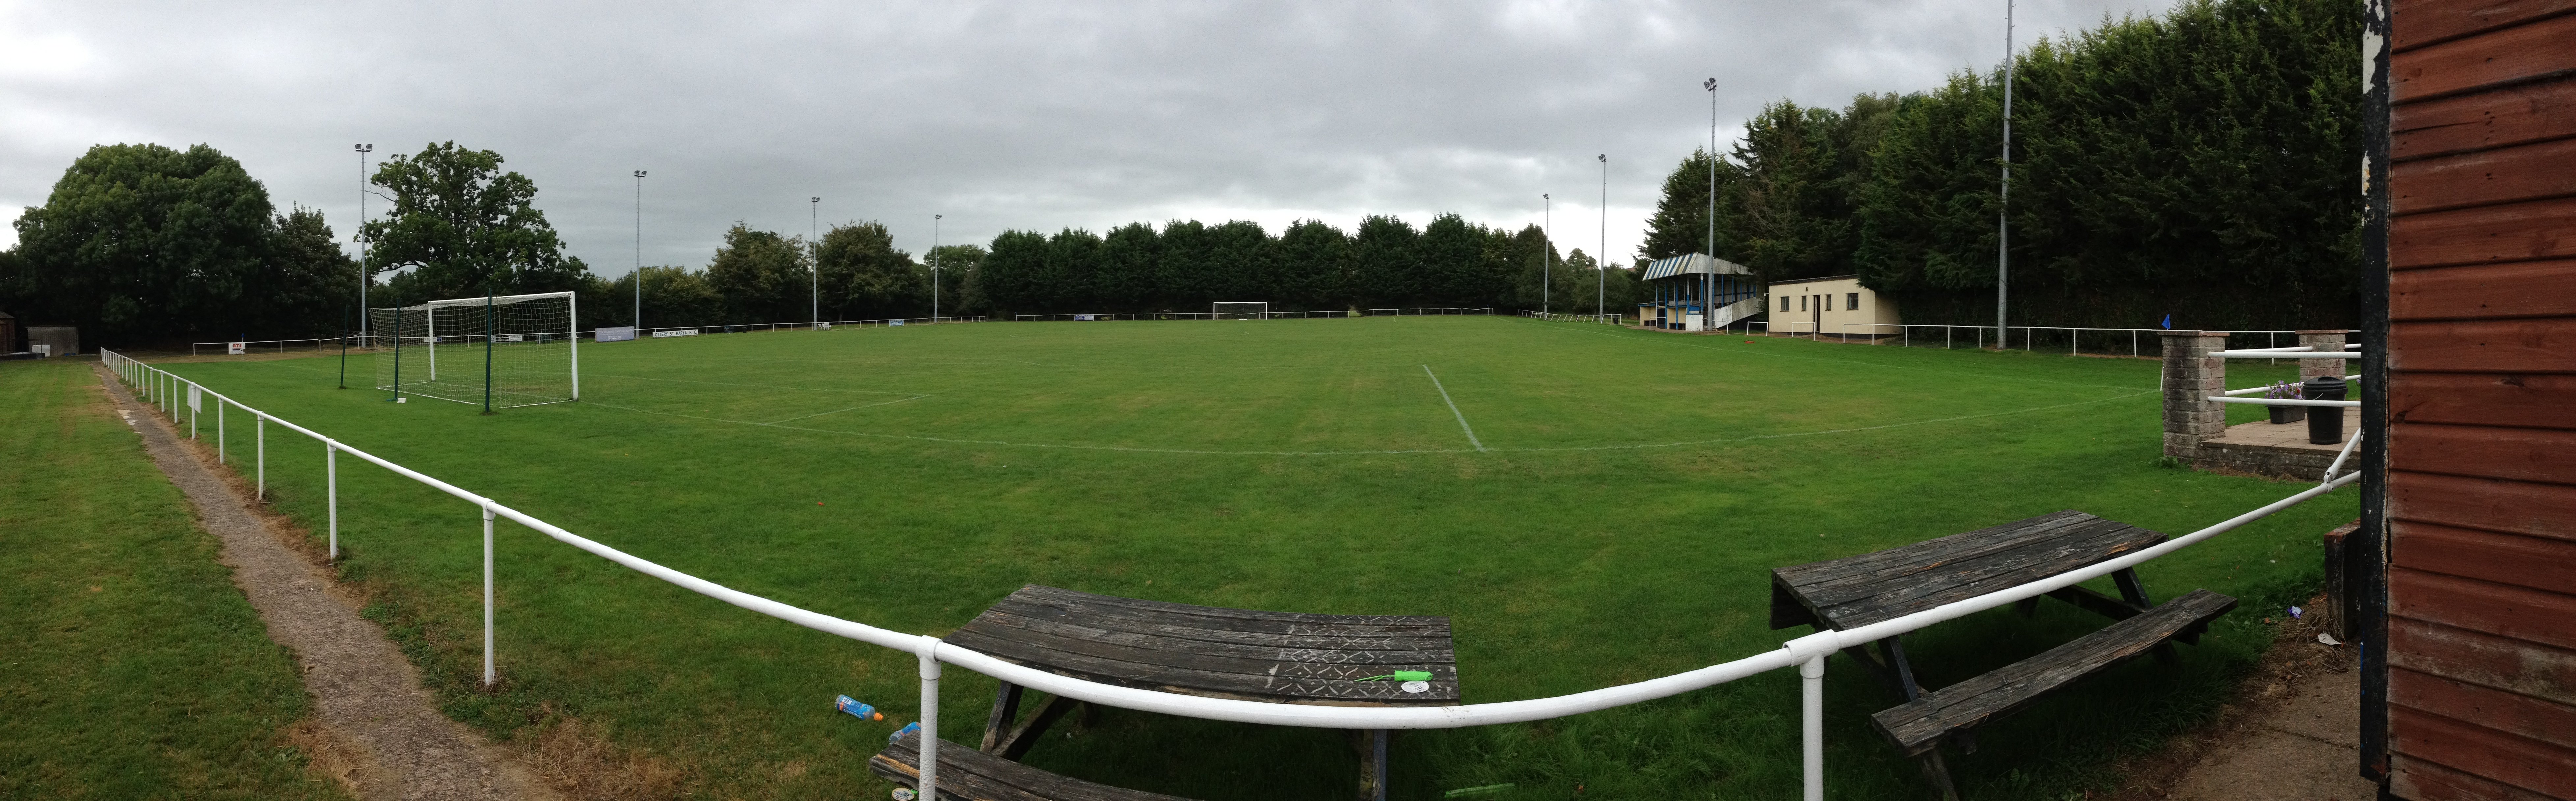 Ottery St Mary Football Club's Washbrook Meadows home.